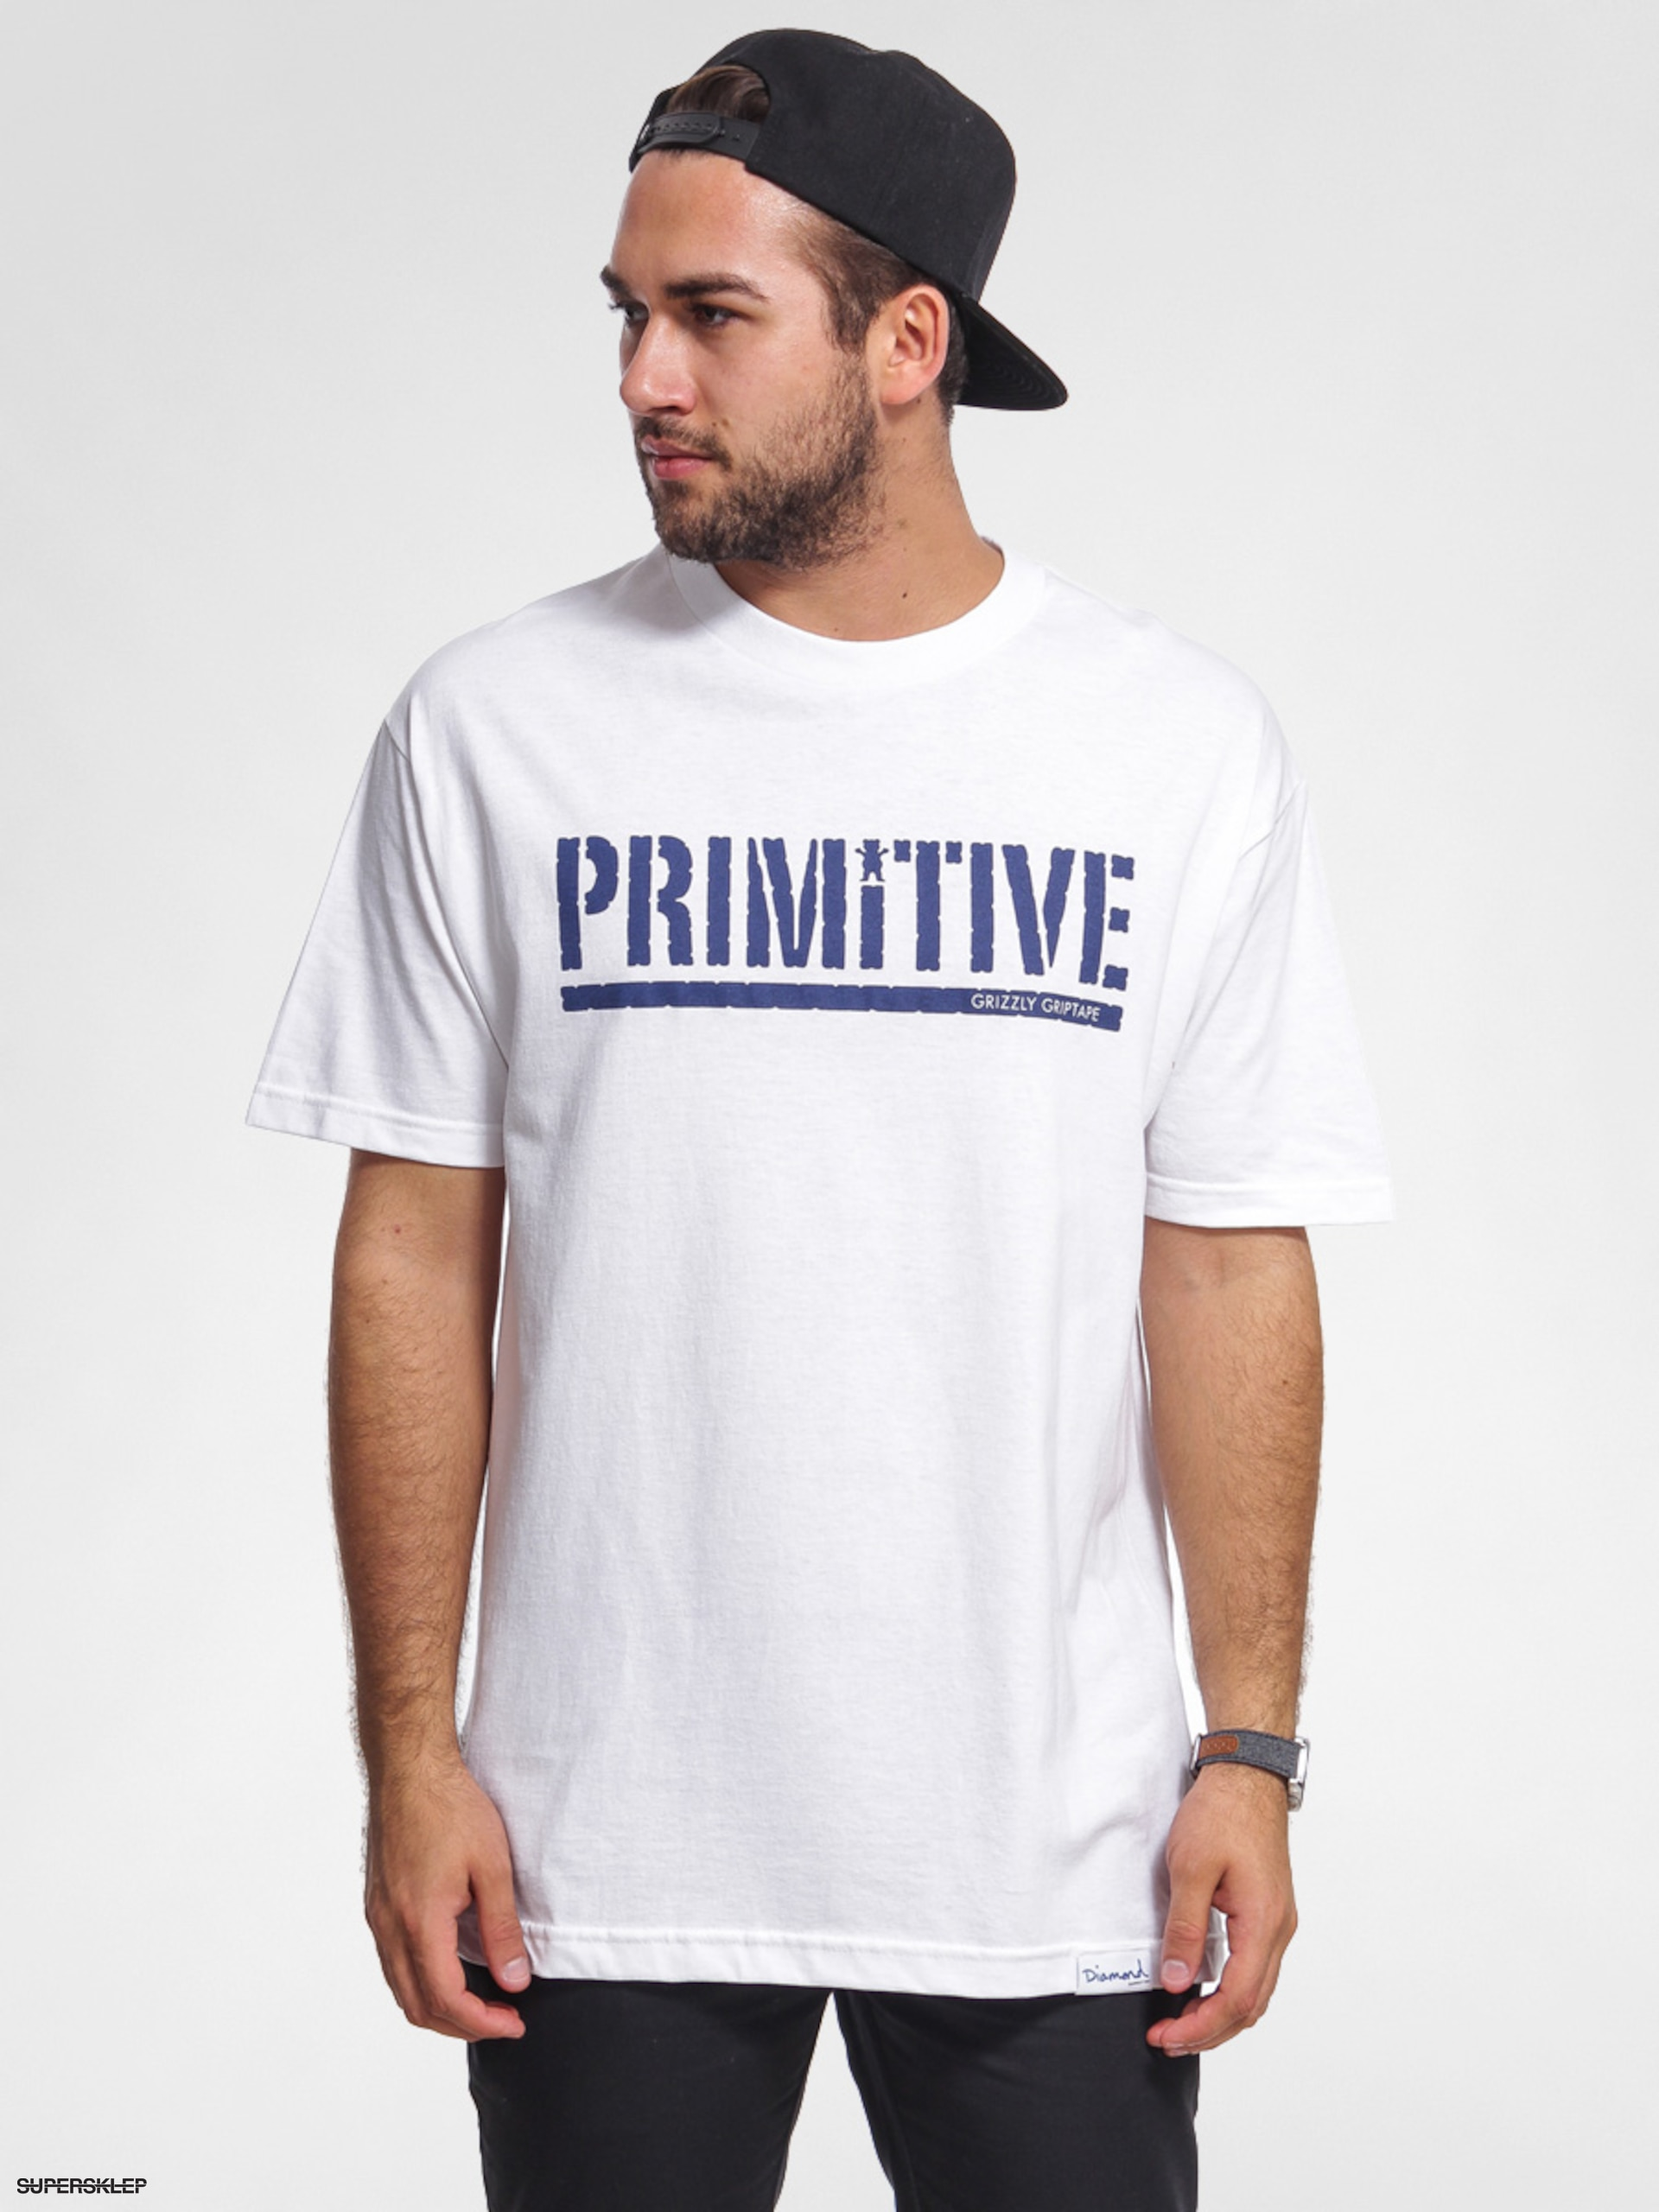 T-shirt Primitive Grizzly Gripped (white)